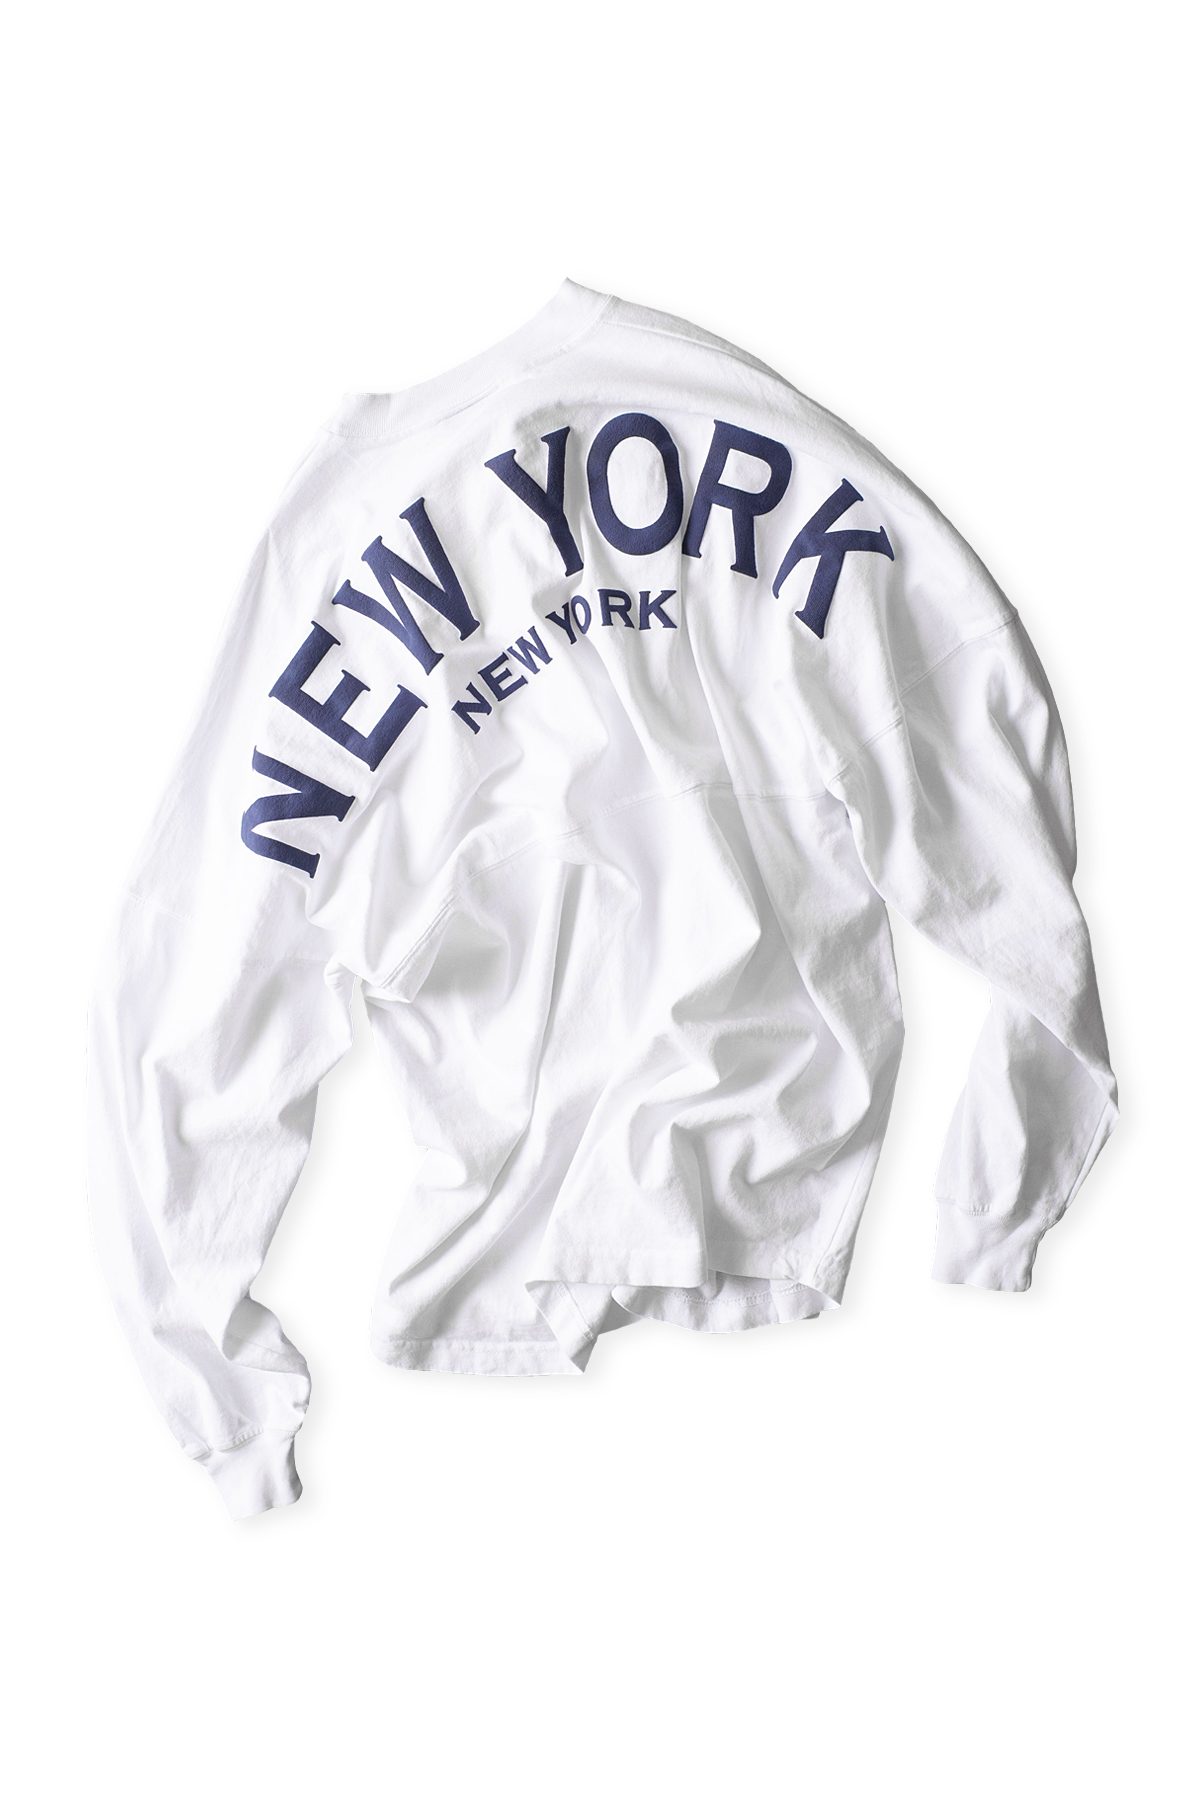 Spirit Jersey : Original Crew Neck Spirit Jersey (New York / White)